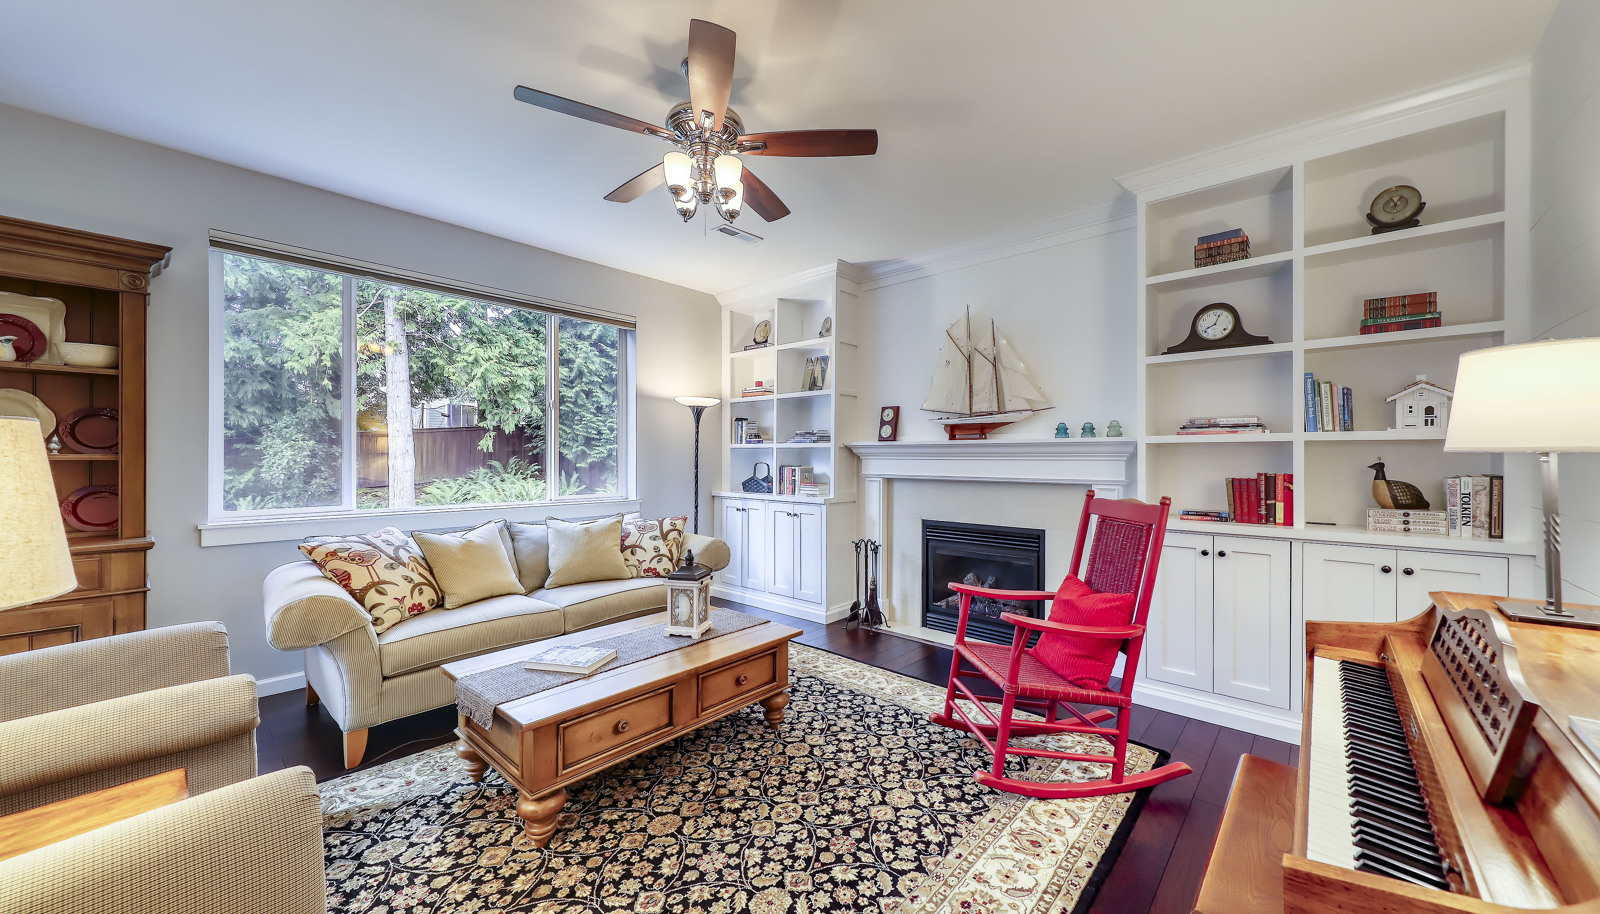 Gorgeous living room with wall of built-ins and gas fireplace holding center court.